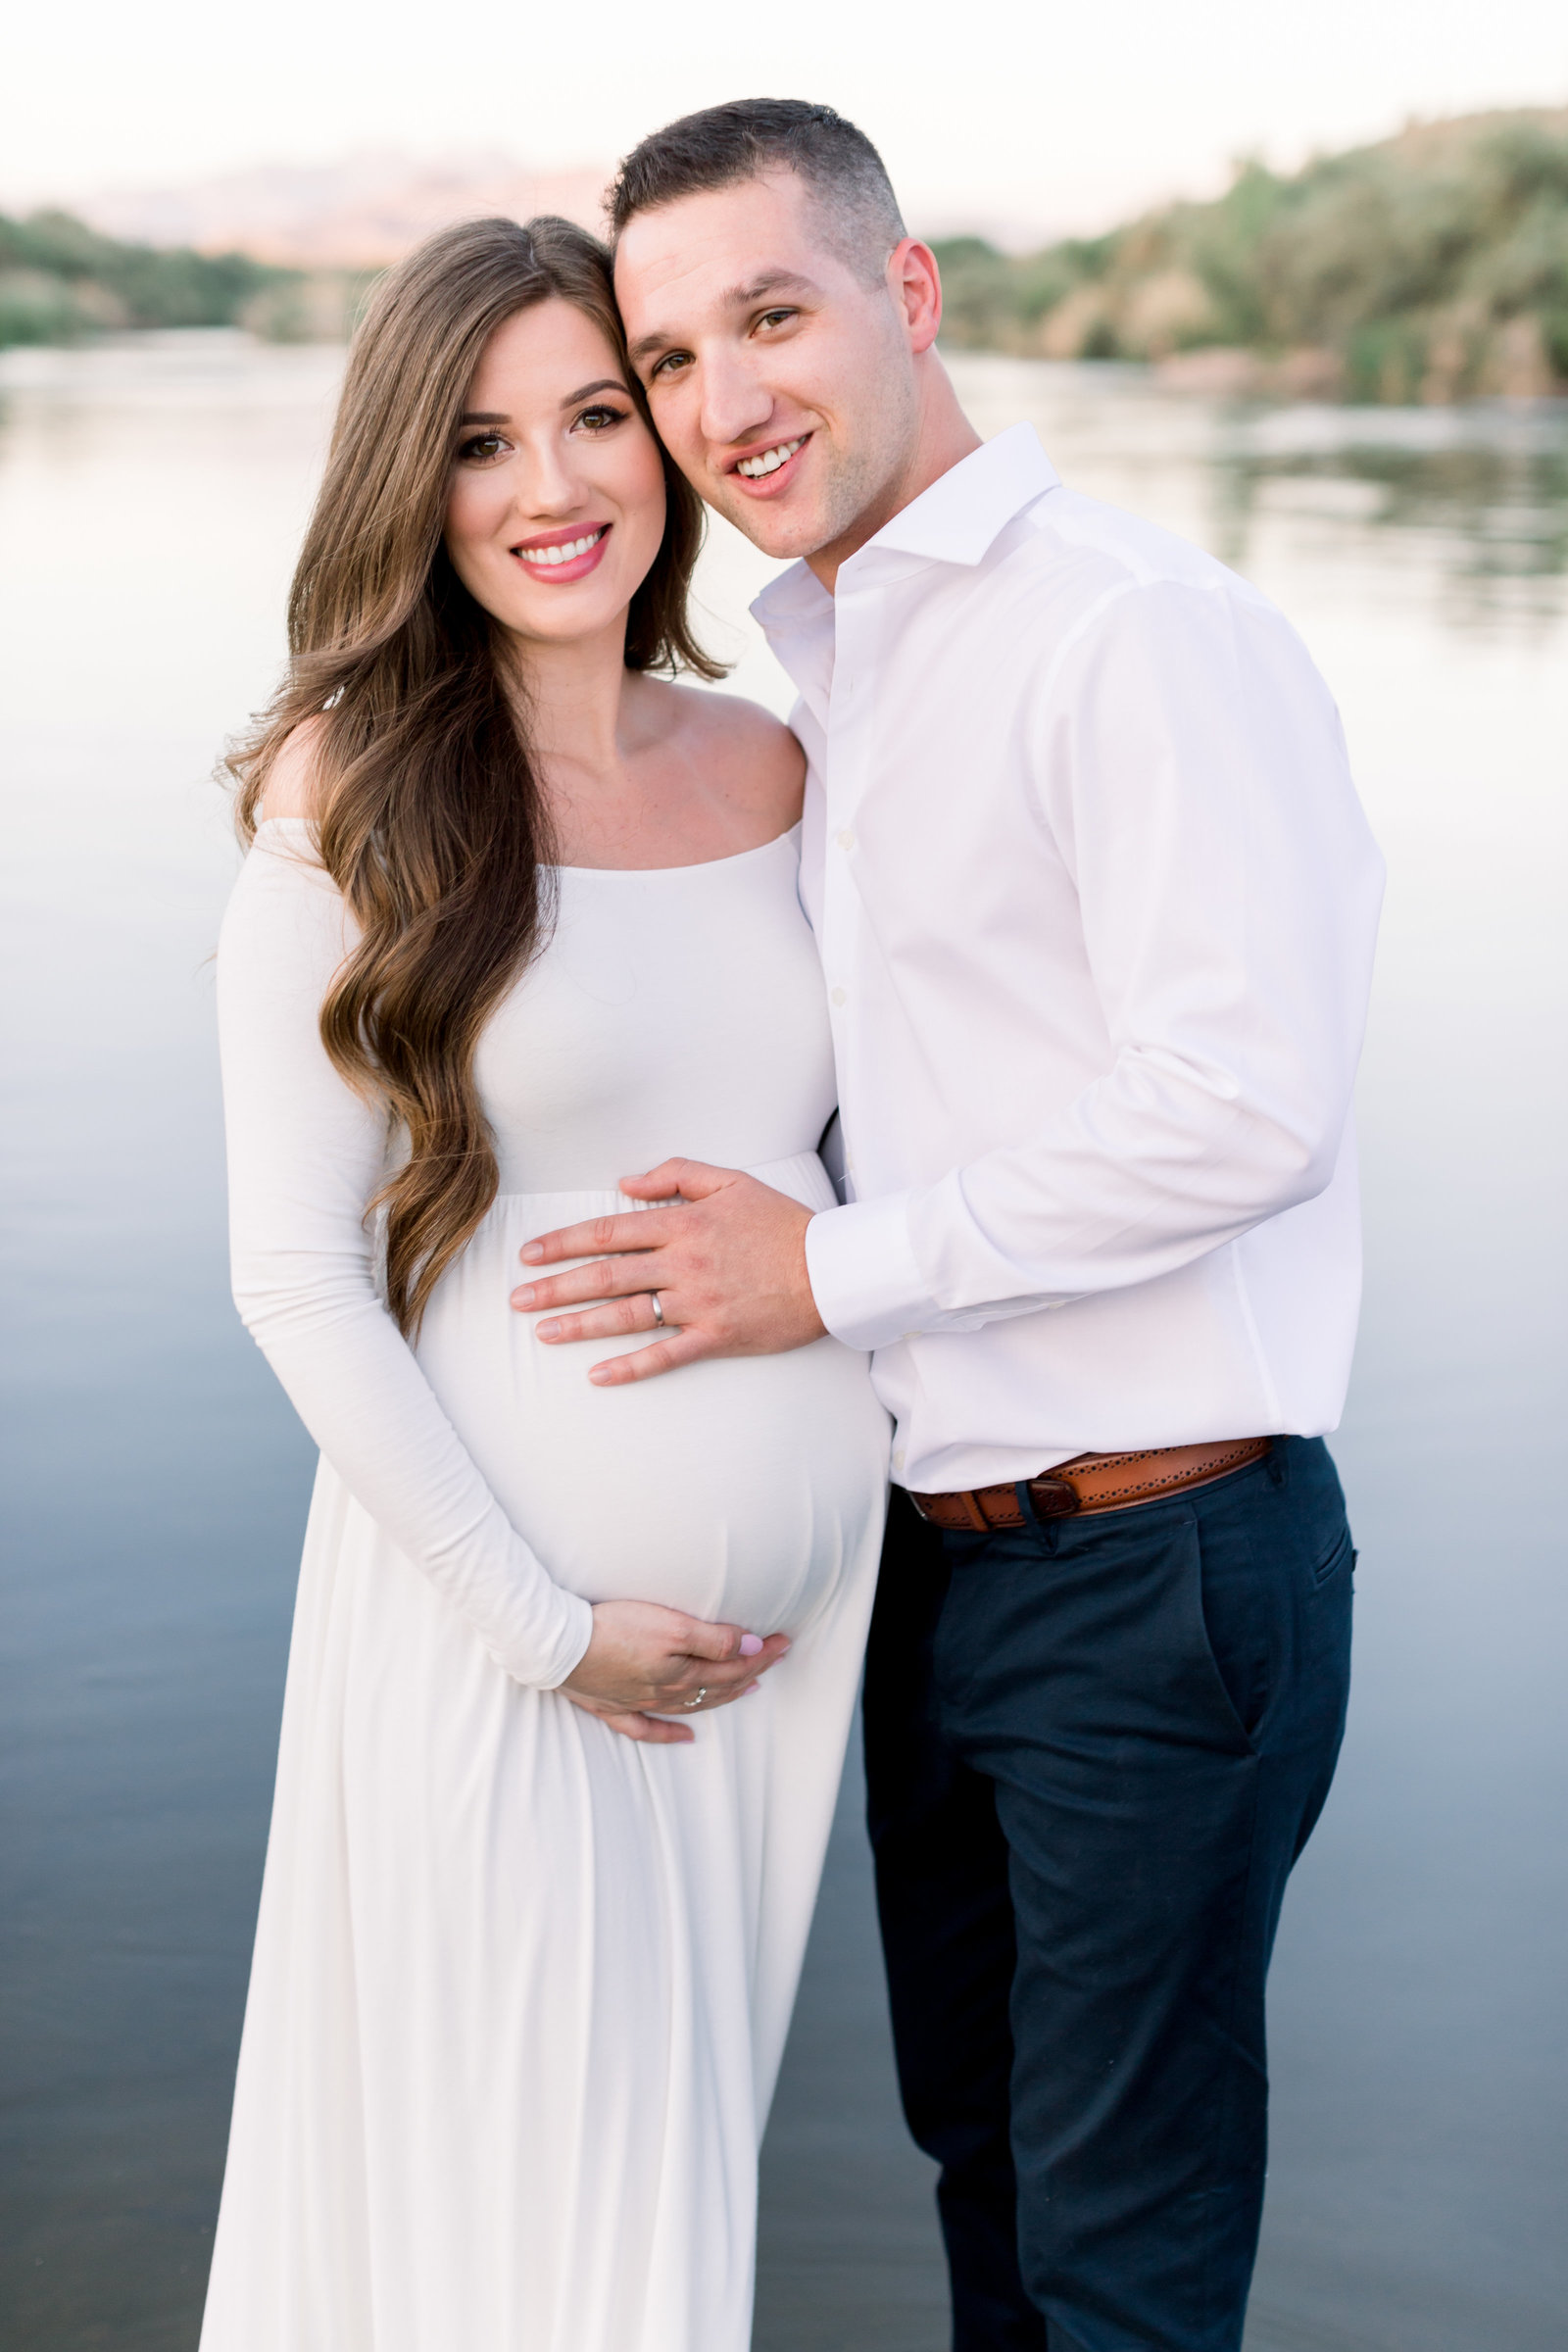 Lanford_Maternity-57